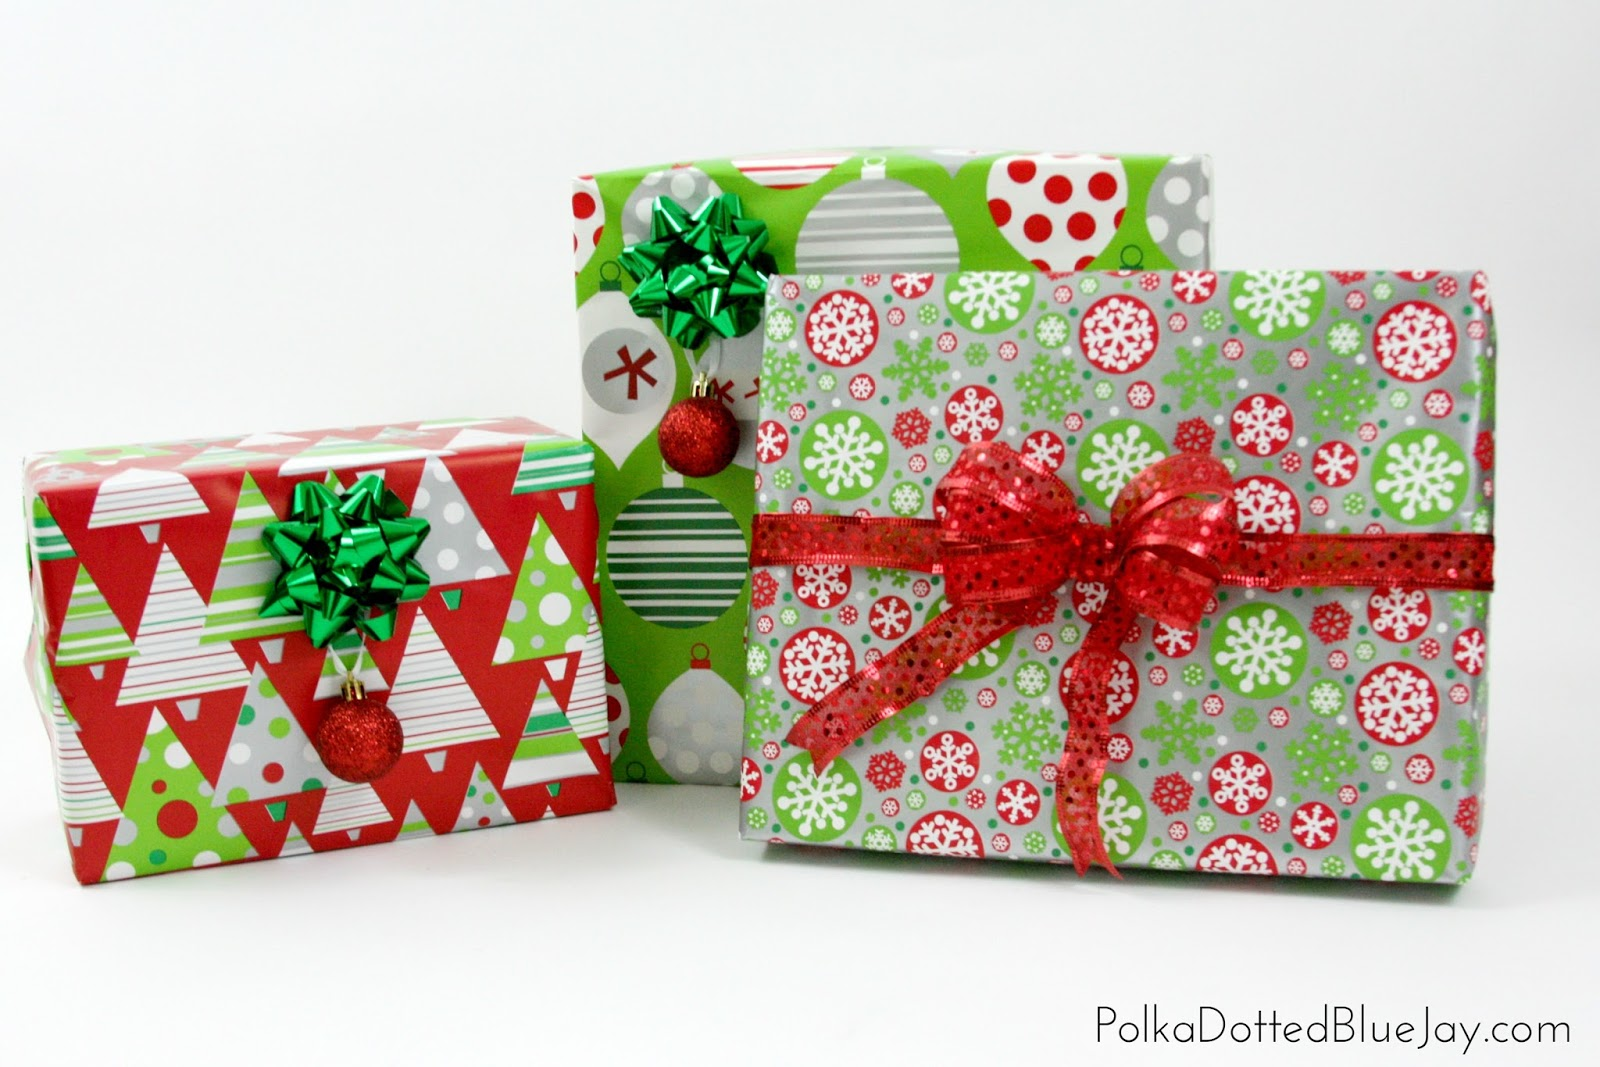 How To Wrap Beautiful Christmas Presents - Polka Dotted Blue Jay